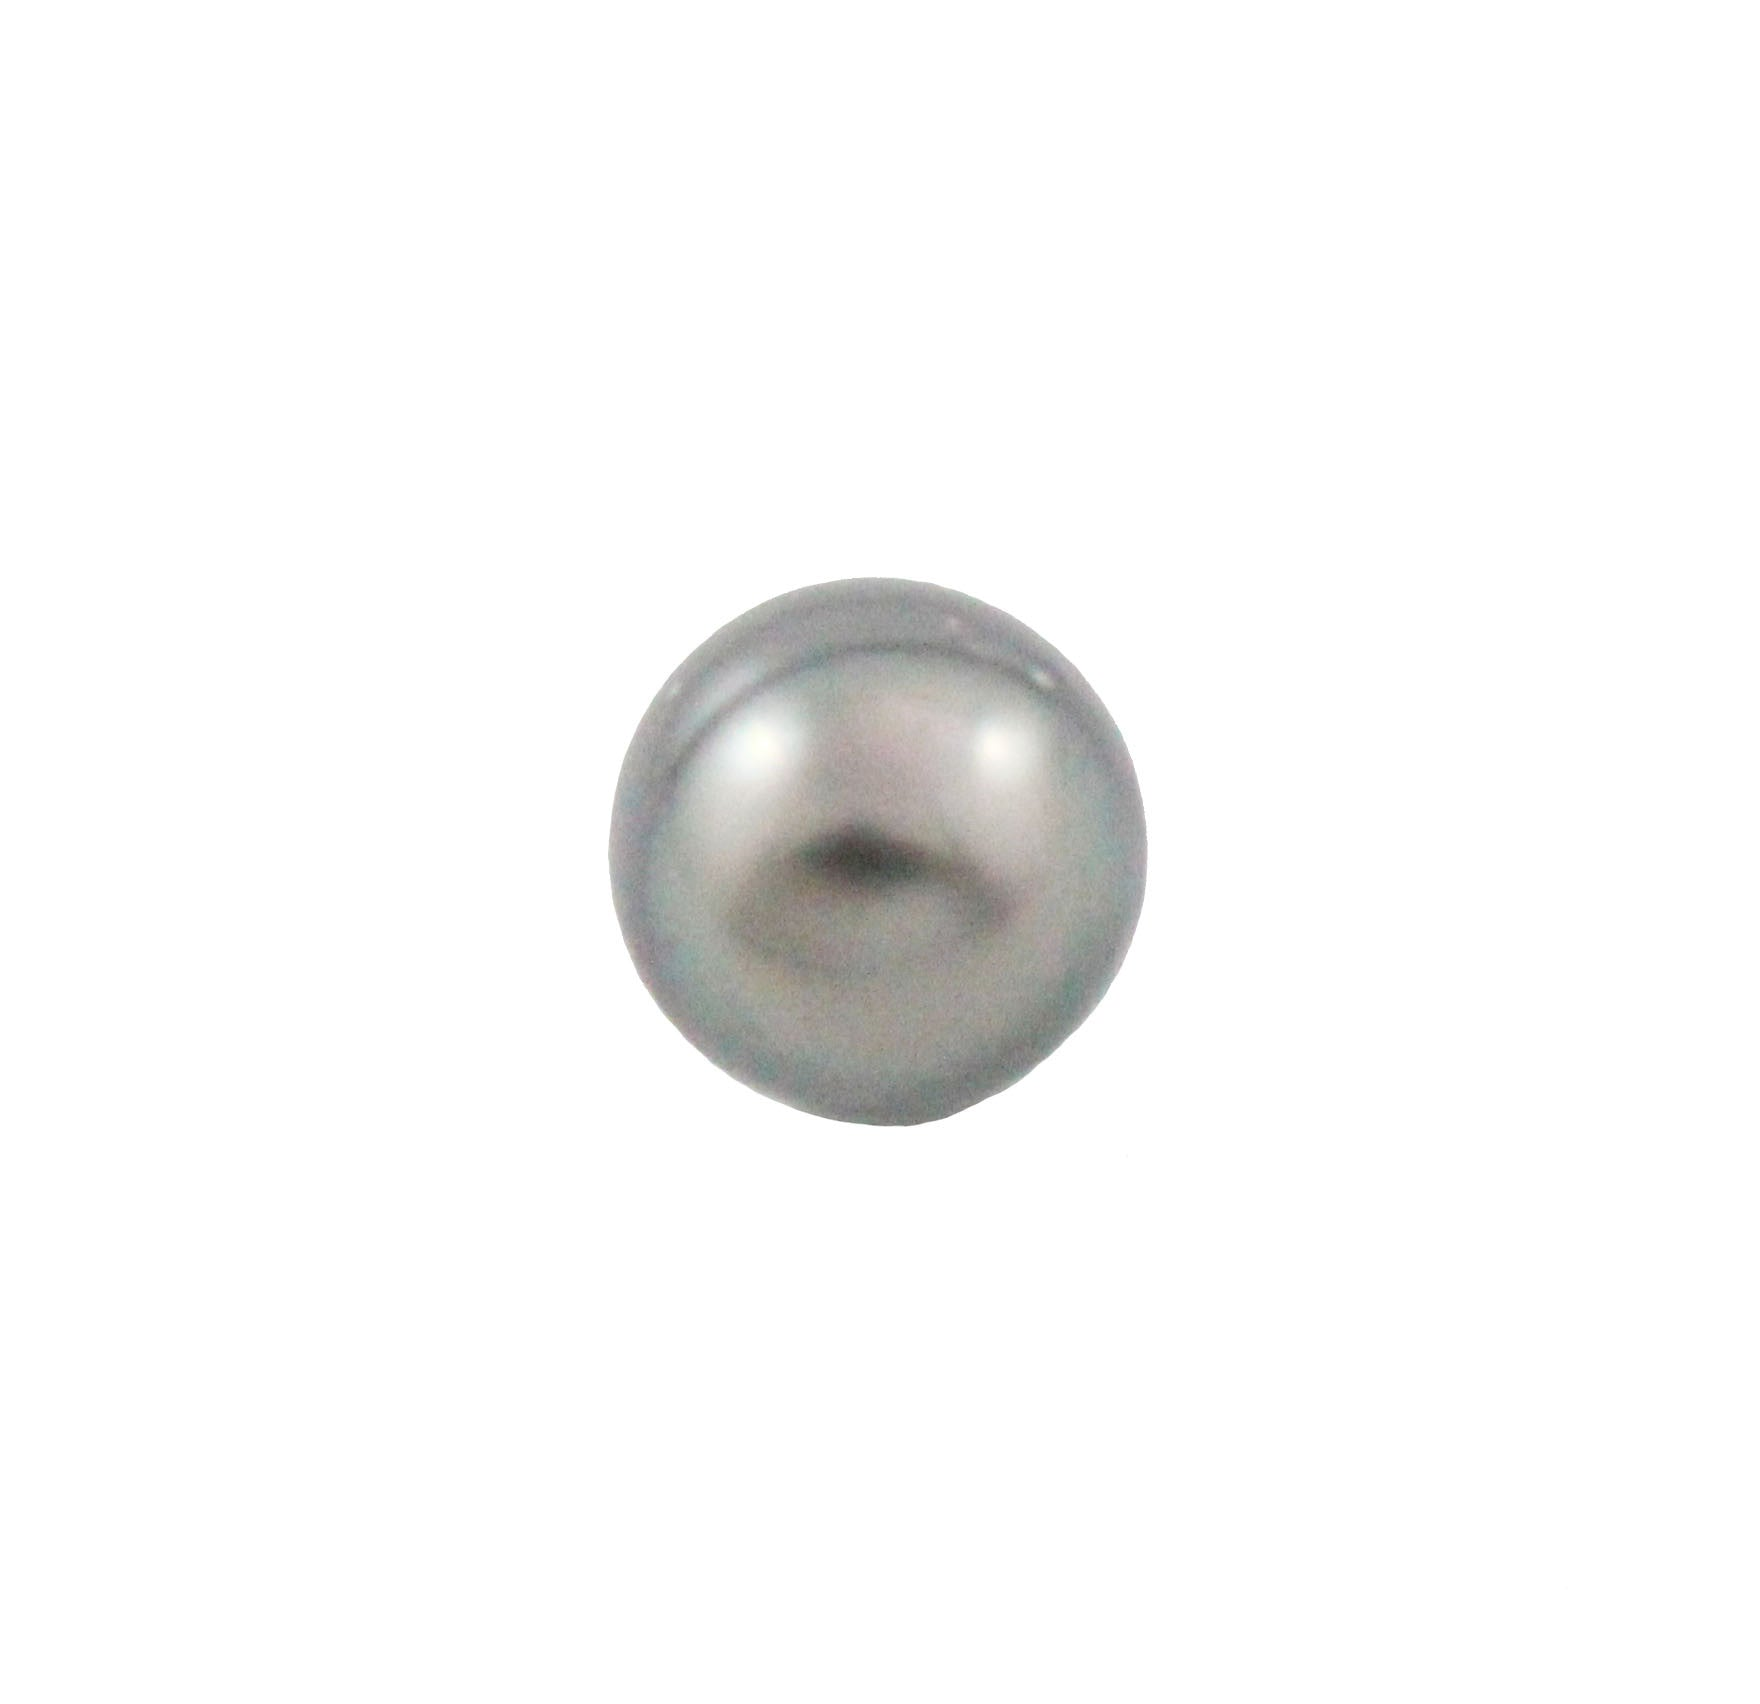 Tahitian pearl undrilled 1.05gr mm 10x8.92mm - Purchase only with custom order - Sarah Hughes - 5